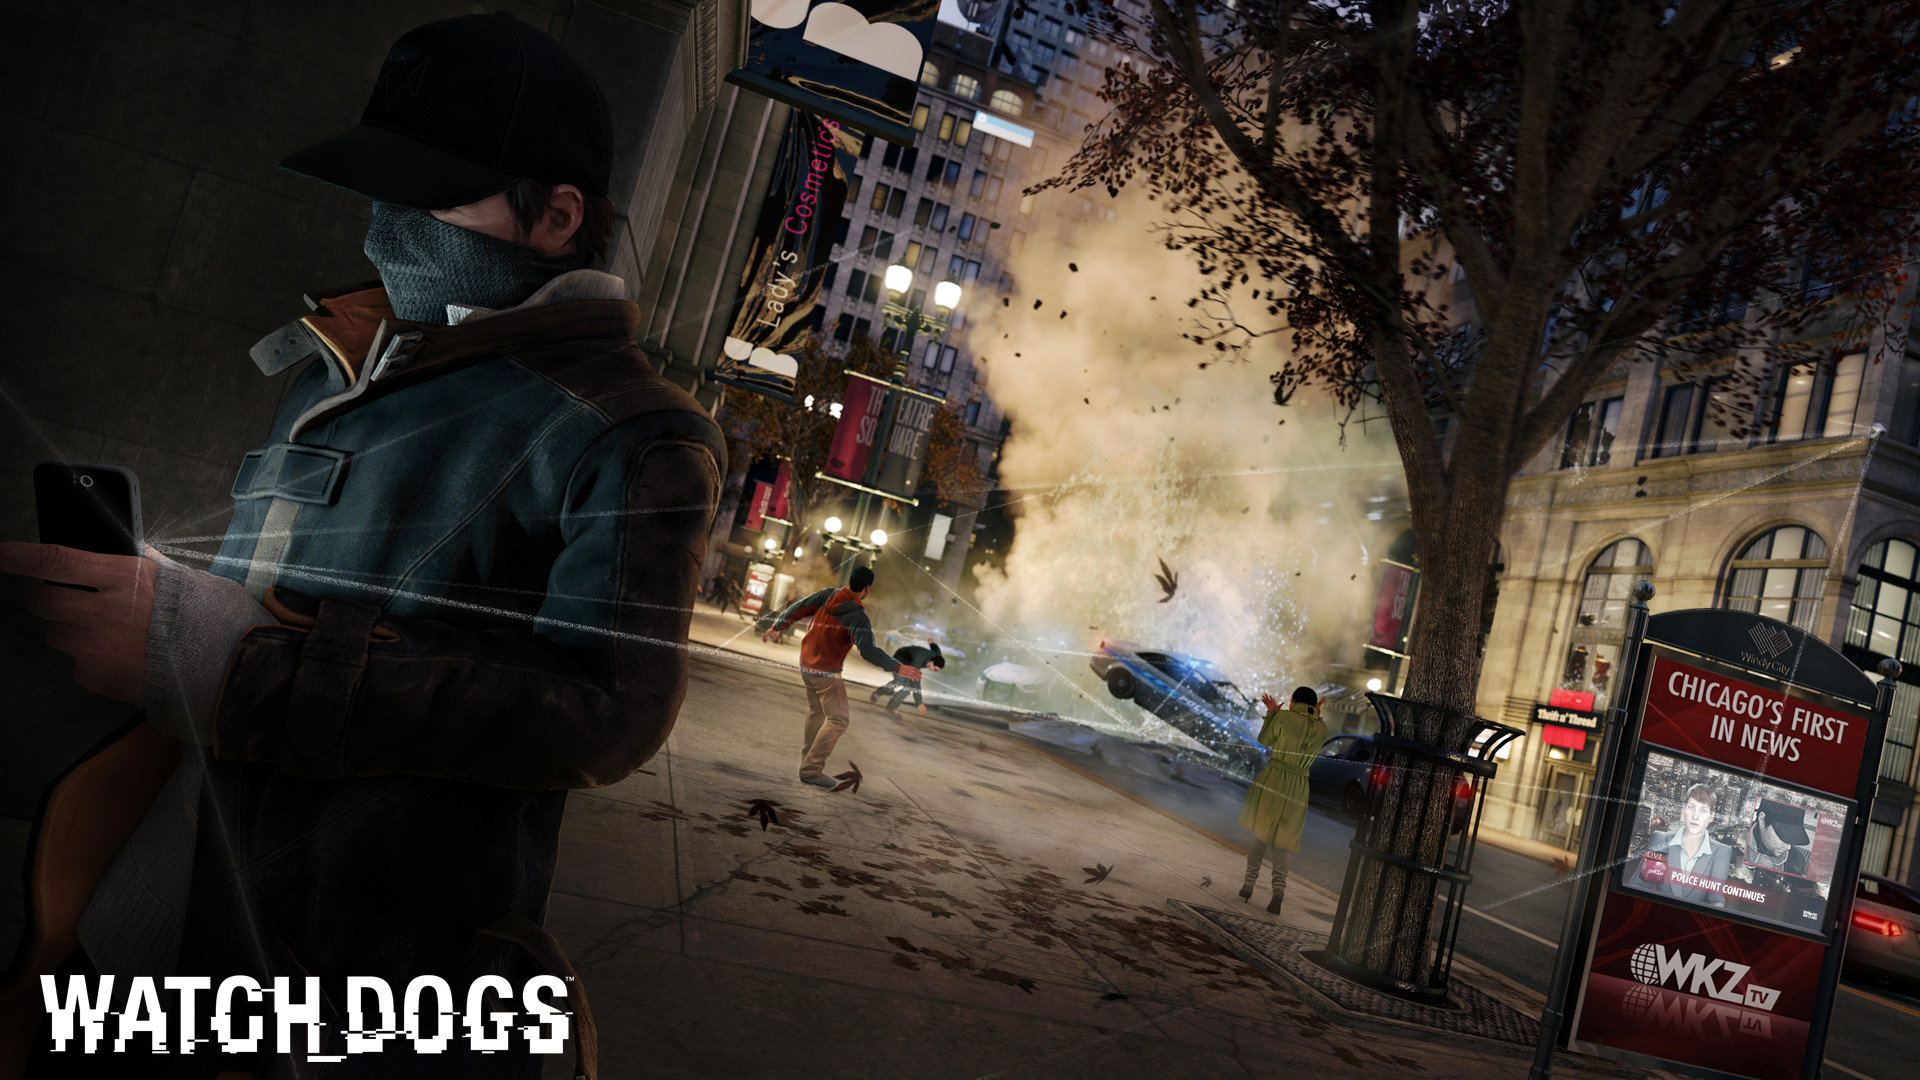 Free Download Watch Dogs Game 21 Hd Wallpaper 1920x1080 For Your